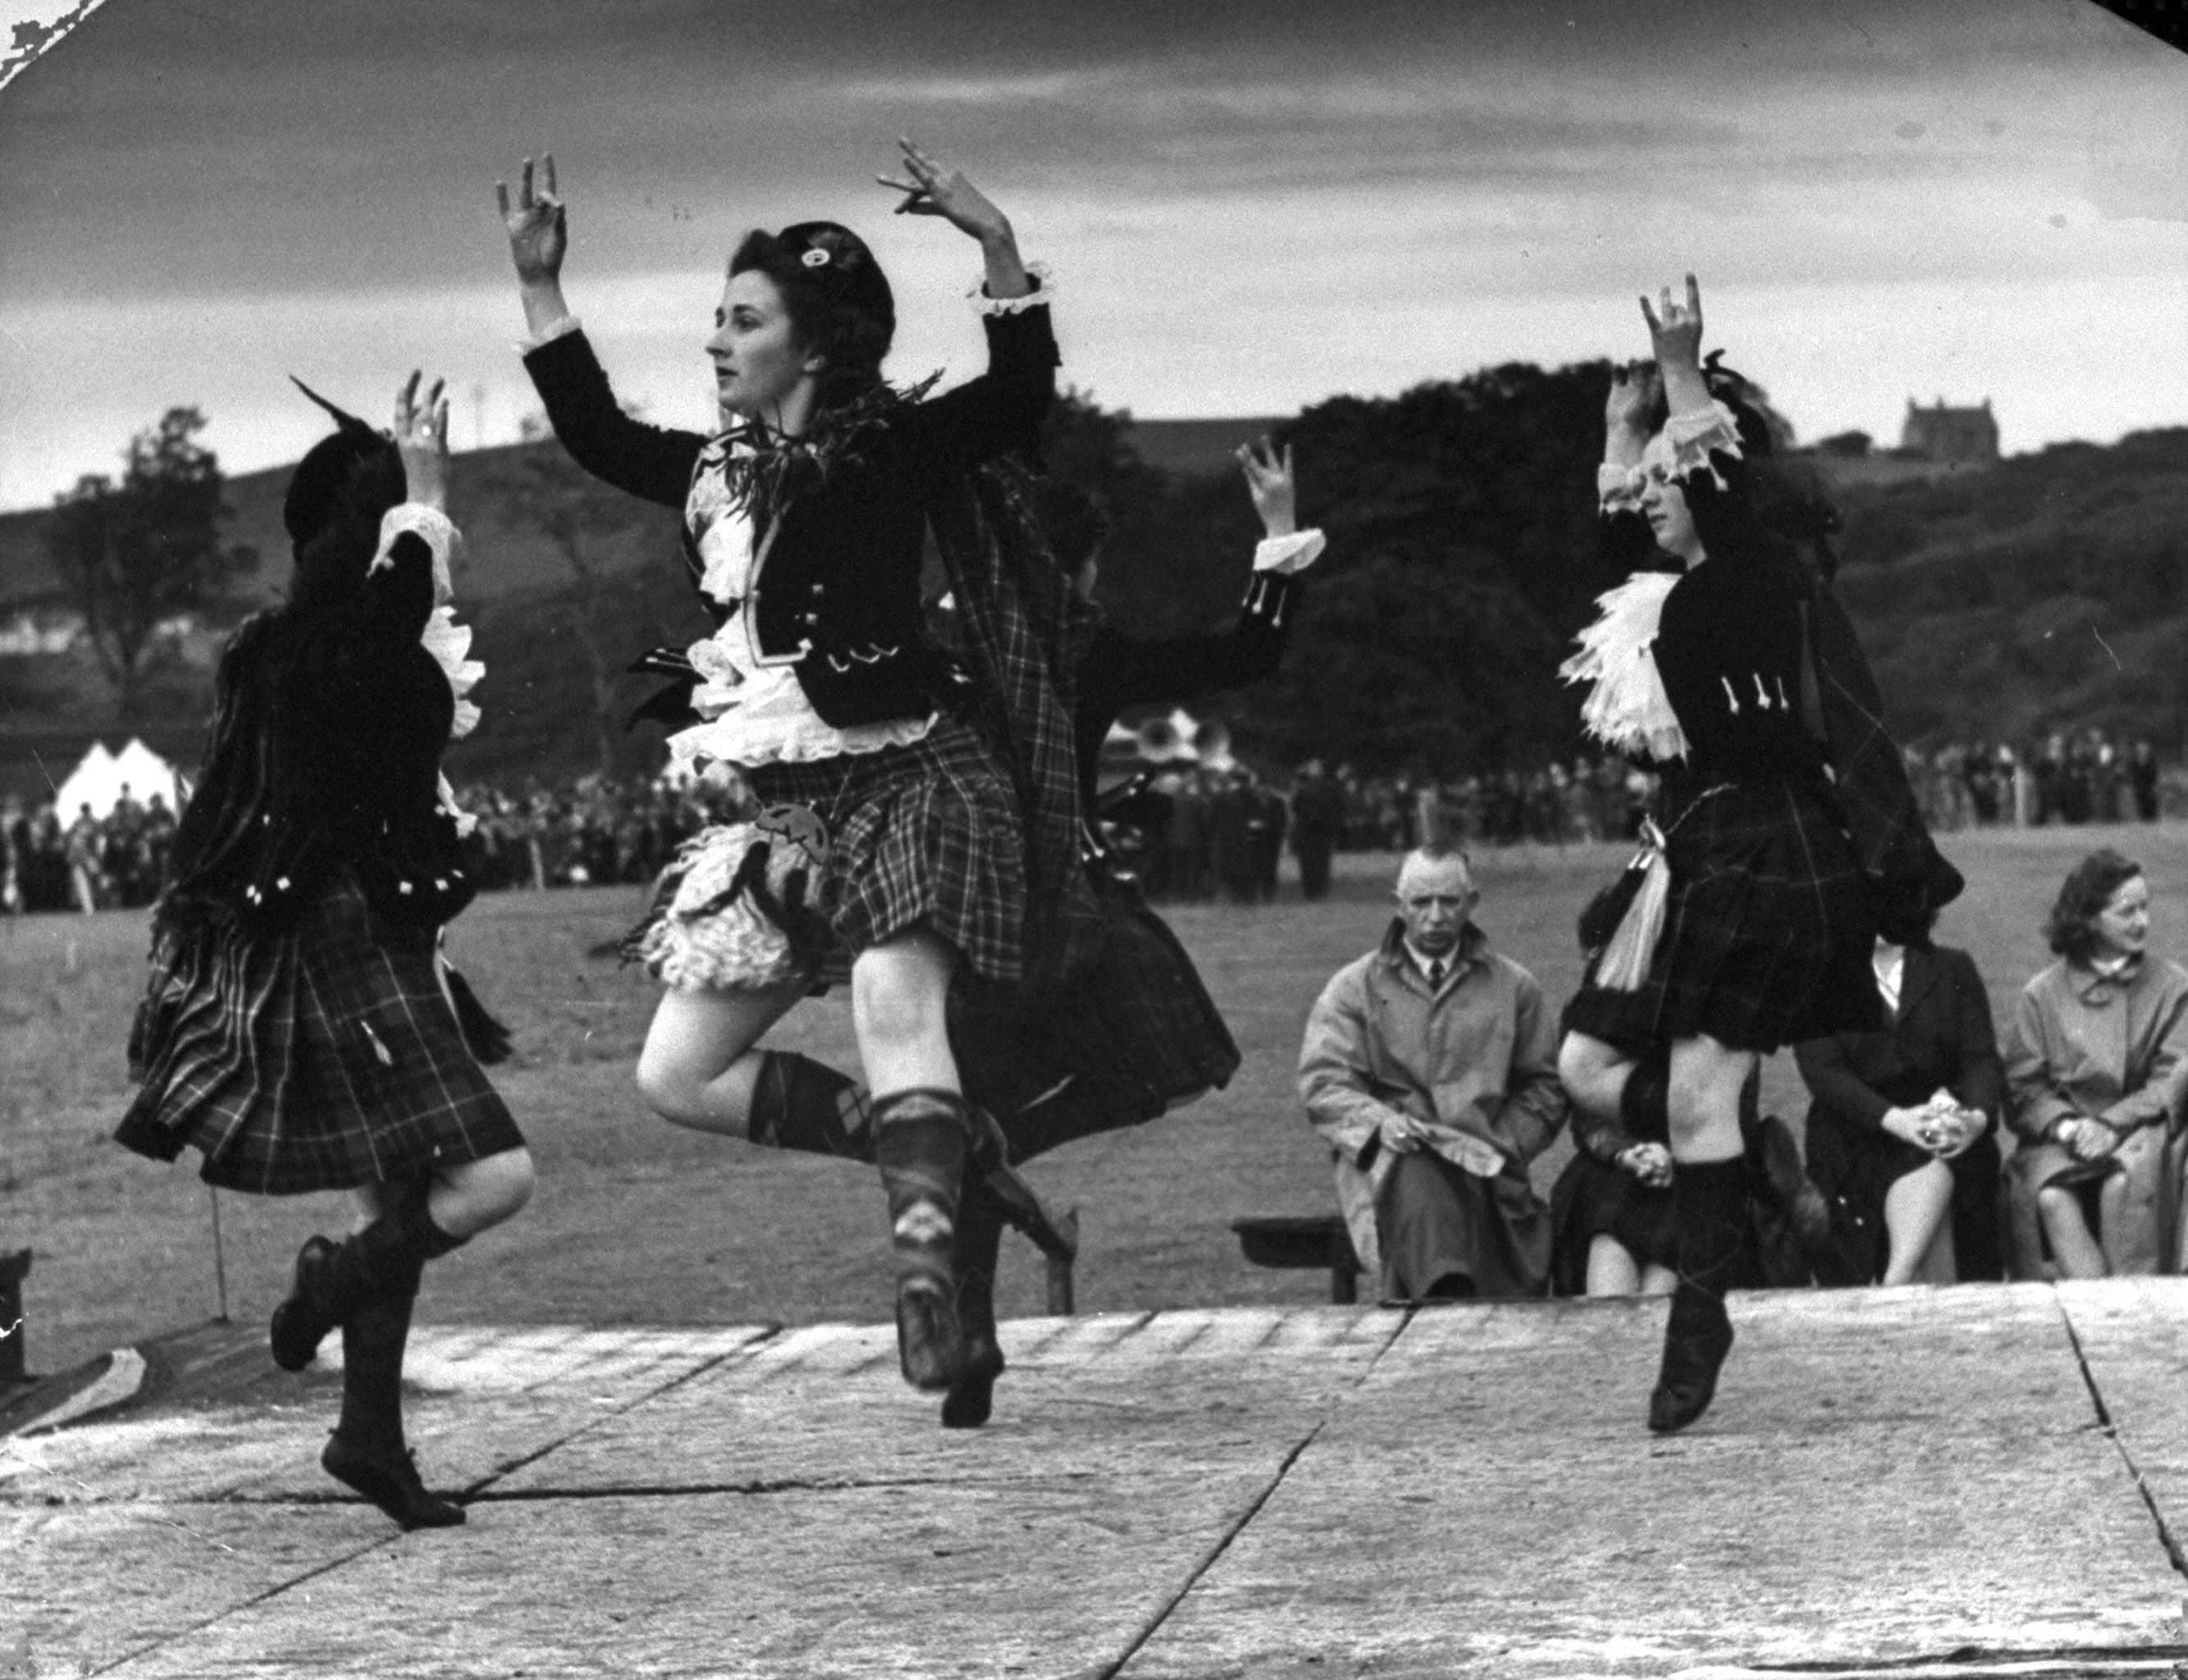 Competitors for the world championship, dancing the Reel of Tulloch, Scotland 1947.